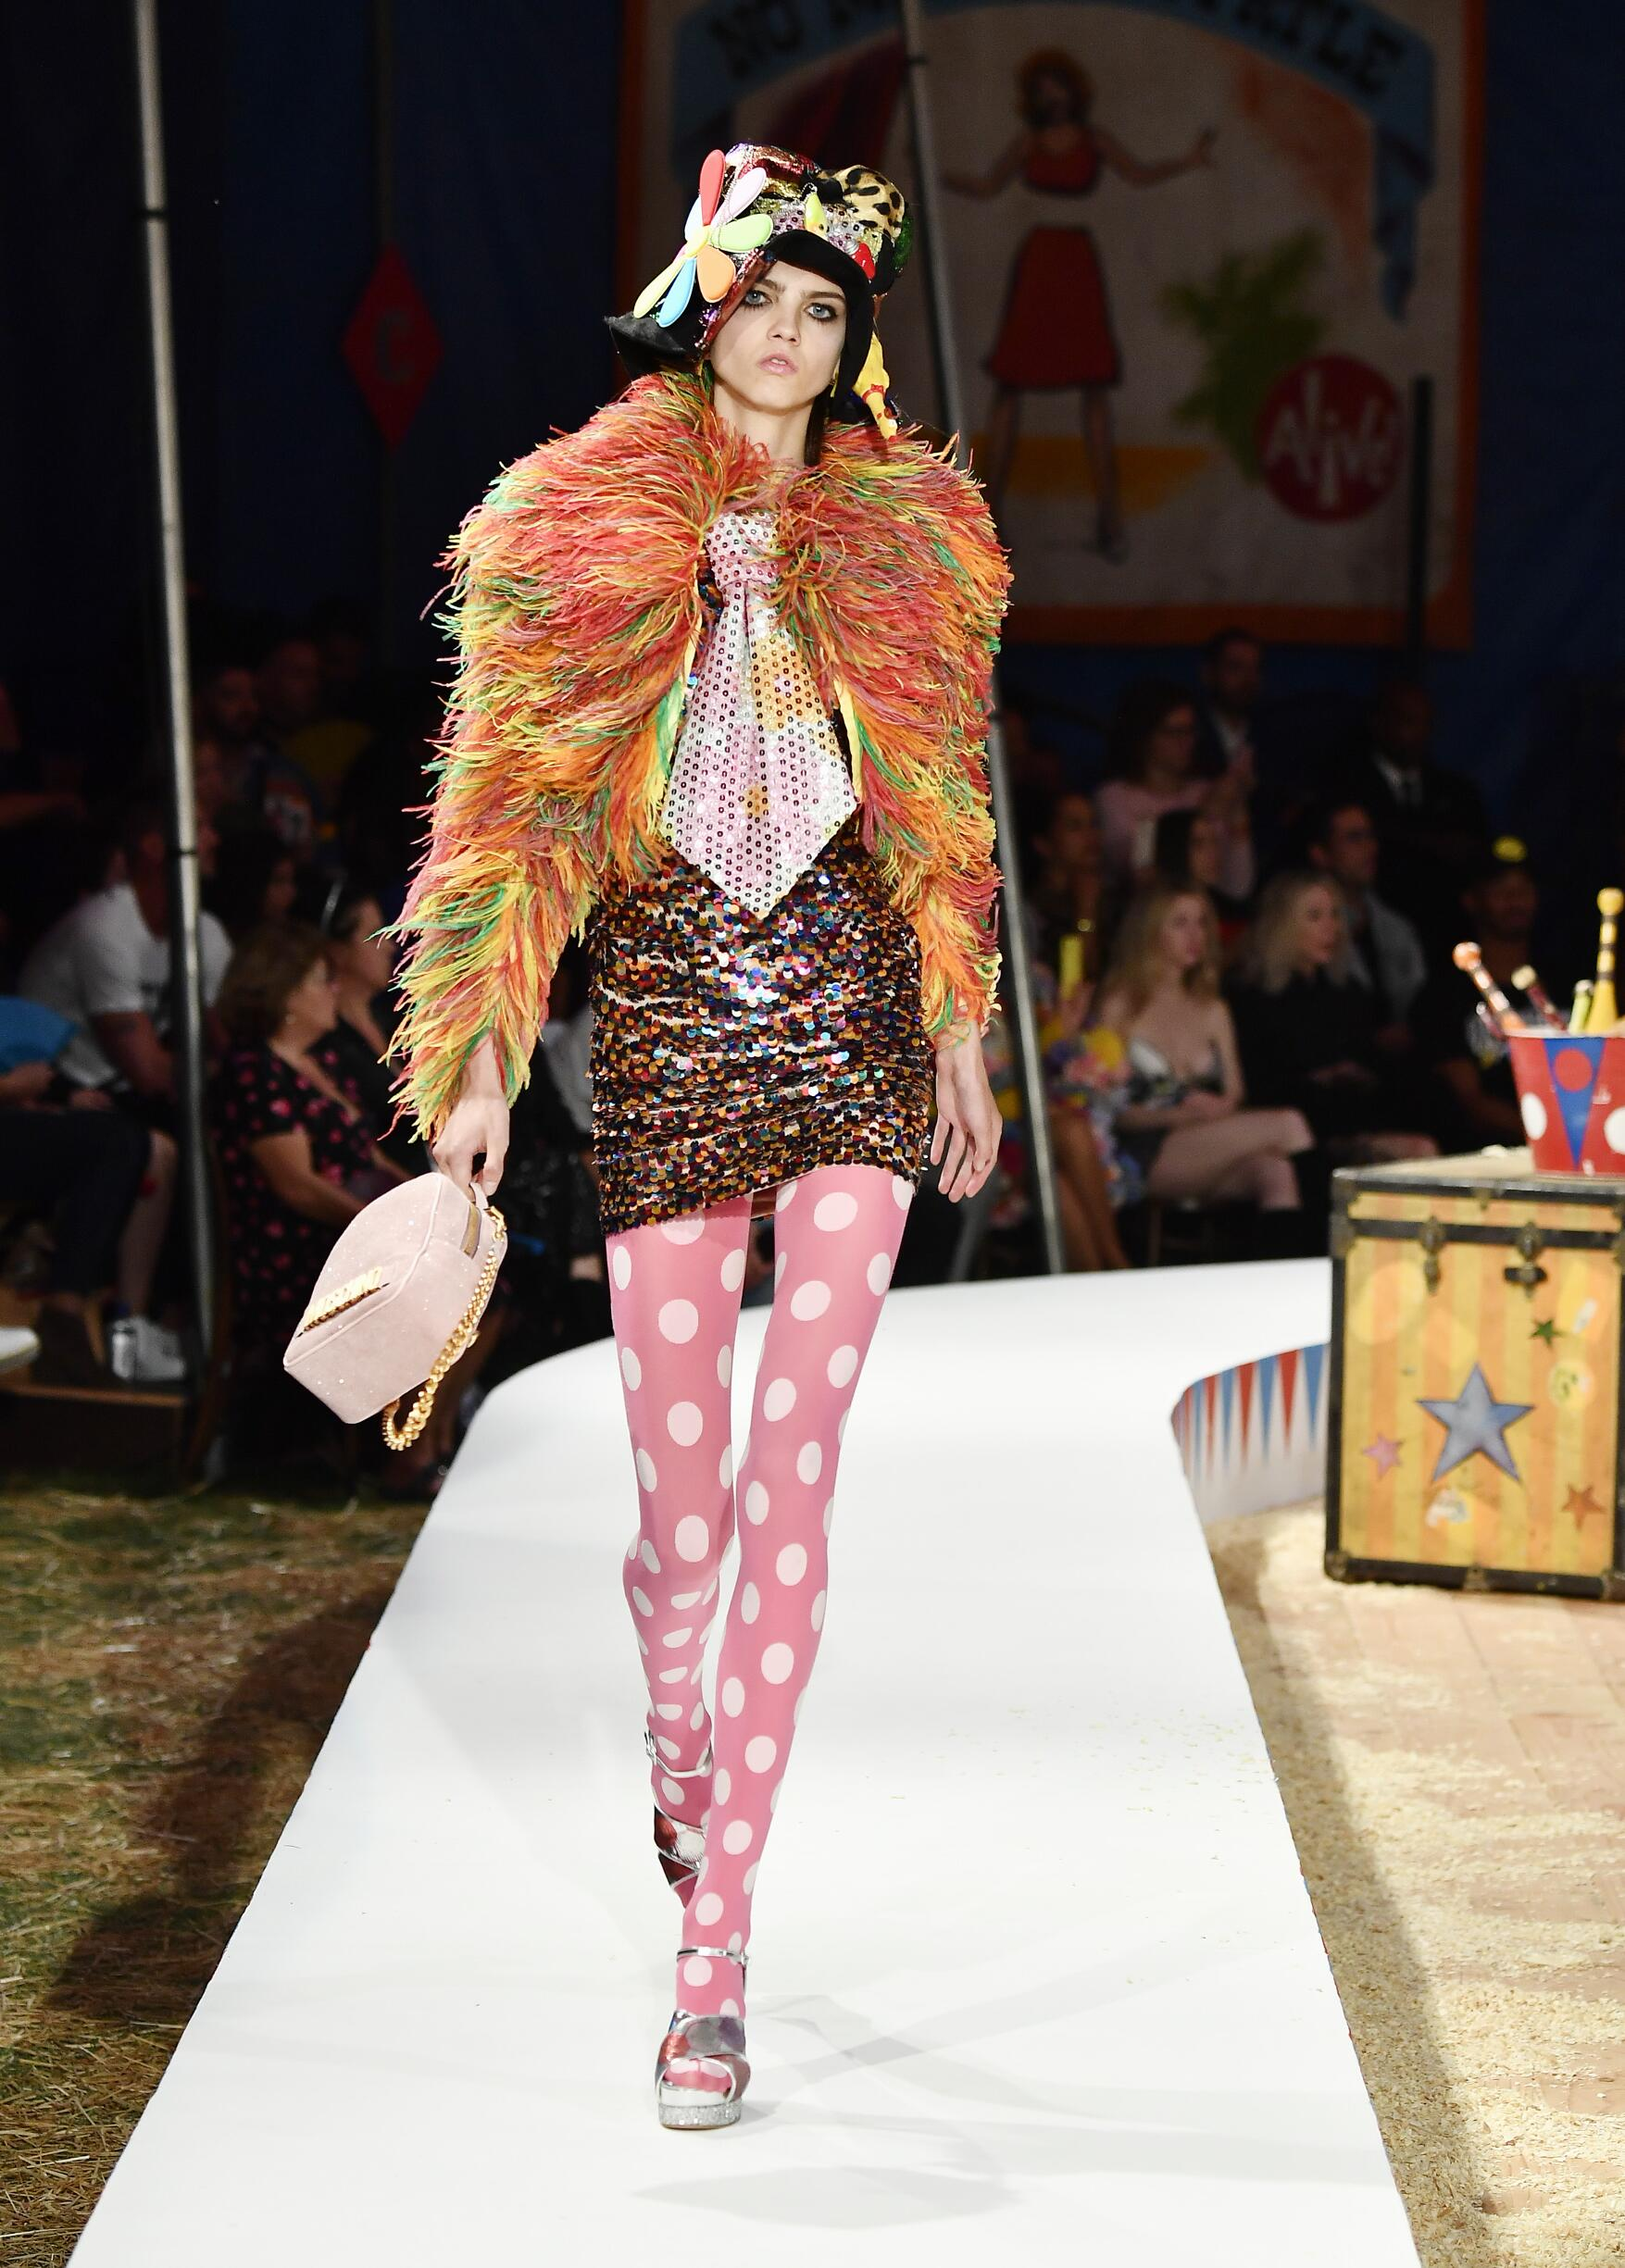 Moschino Spring Summer 2019 Menswear and Women's Resort Collection Look 31 Los Angeles